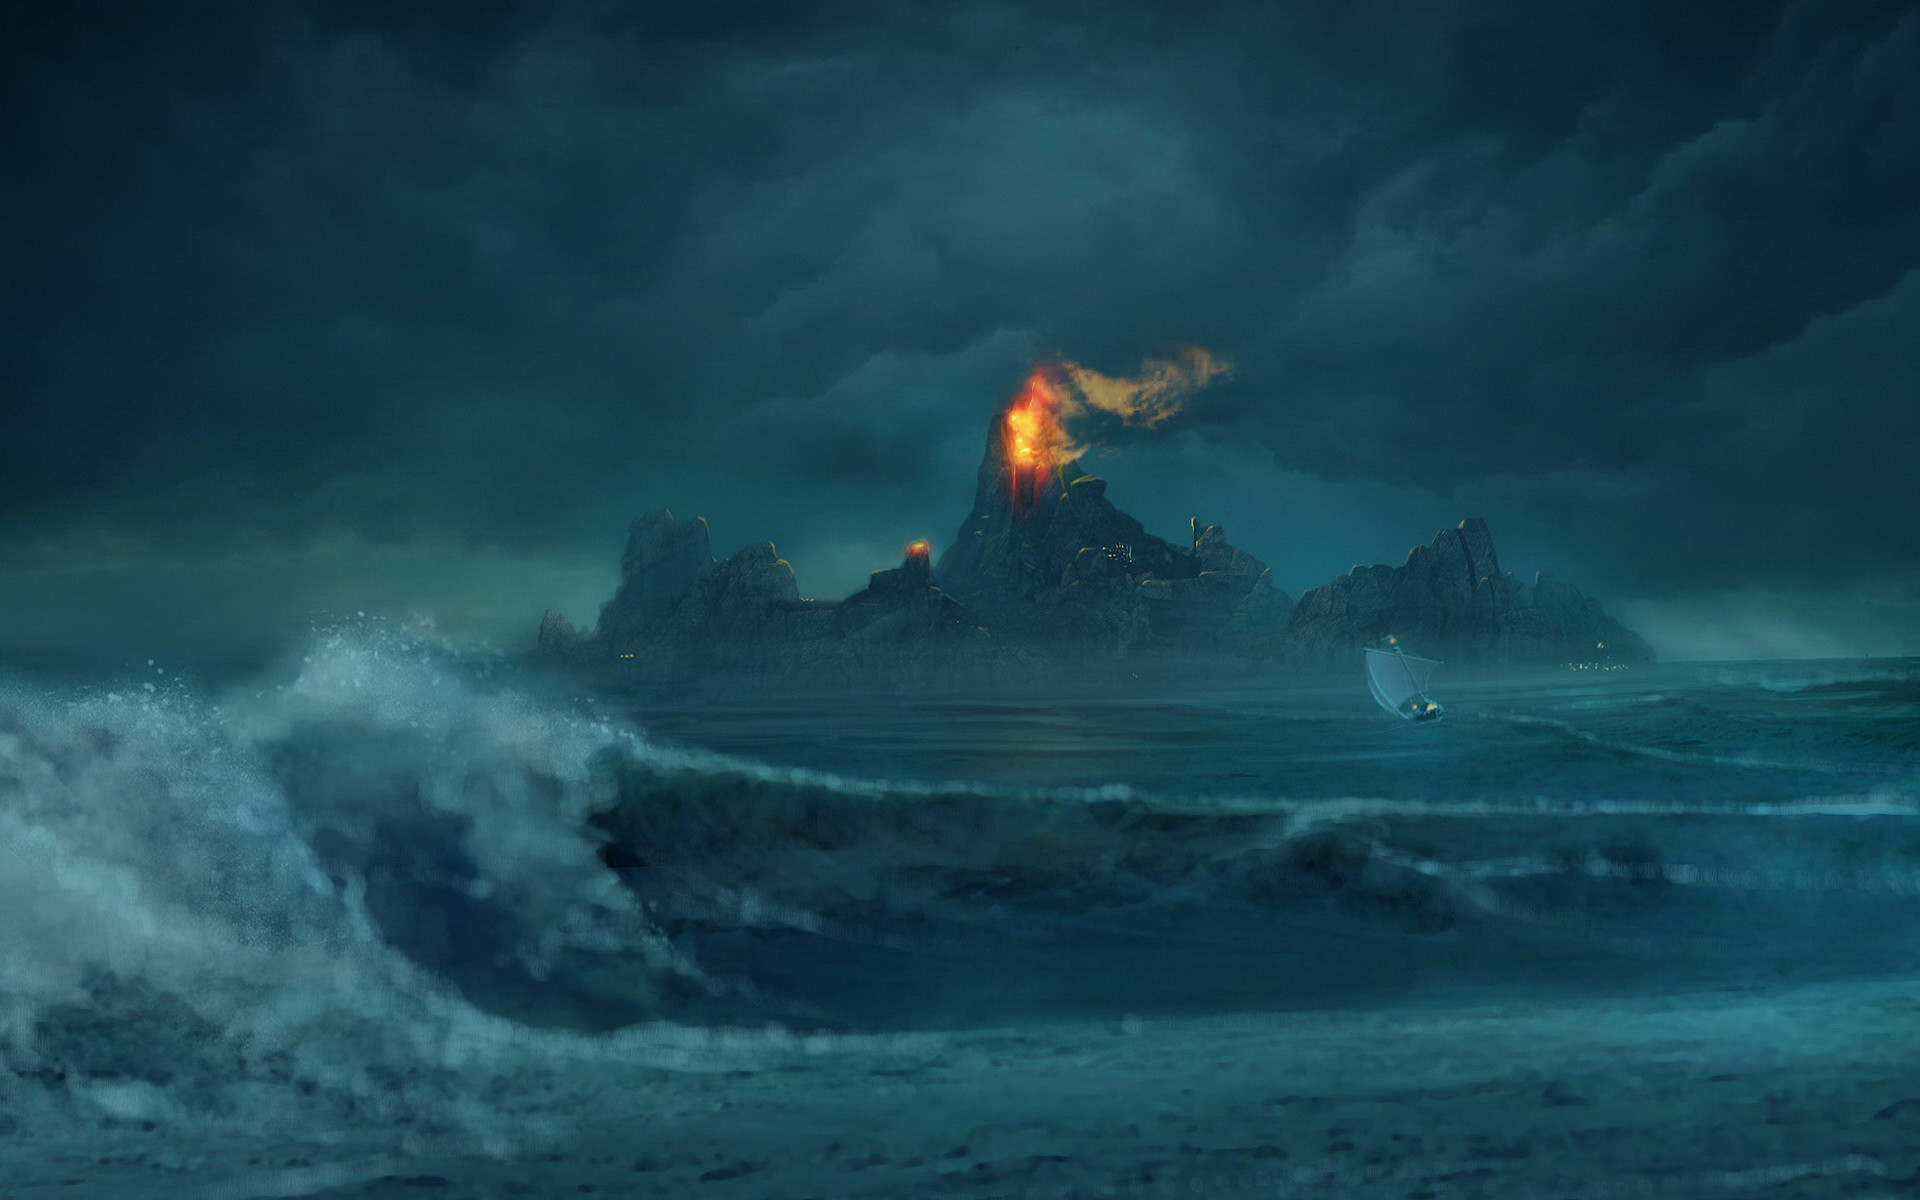 Volcano paper supplier stormy sea photo middle